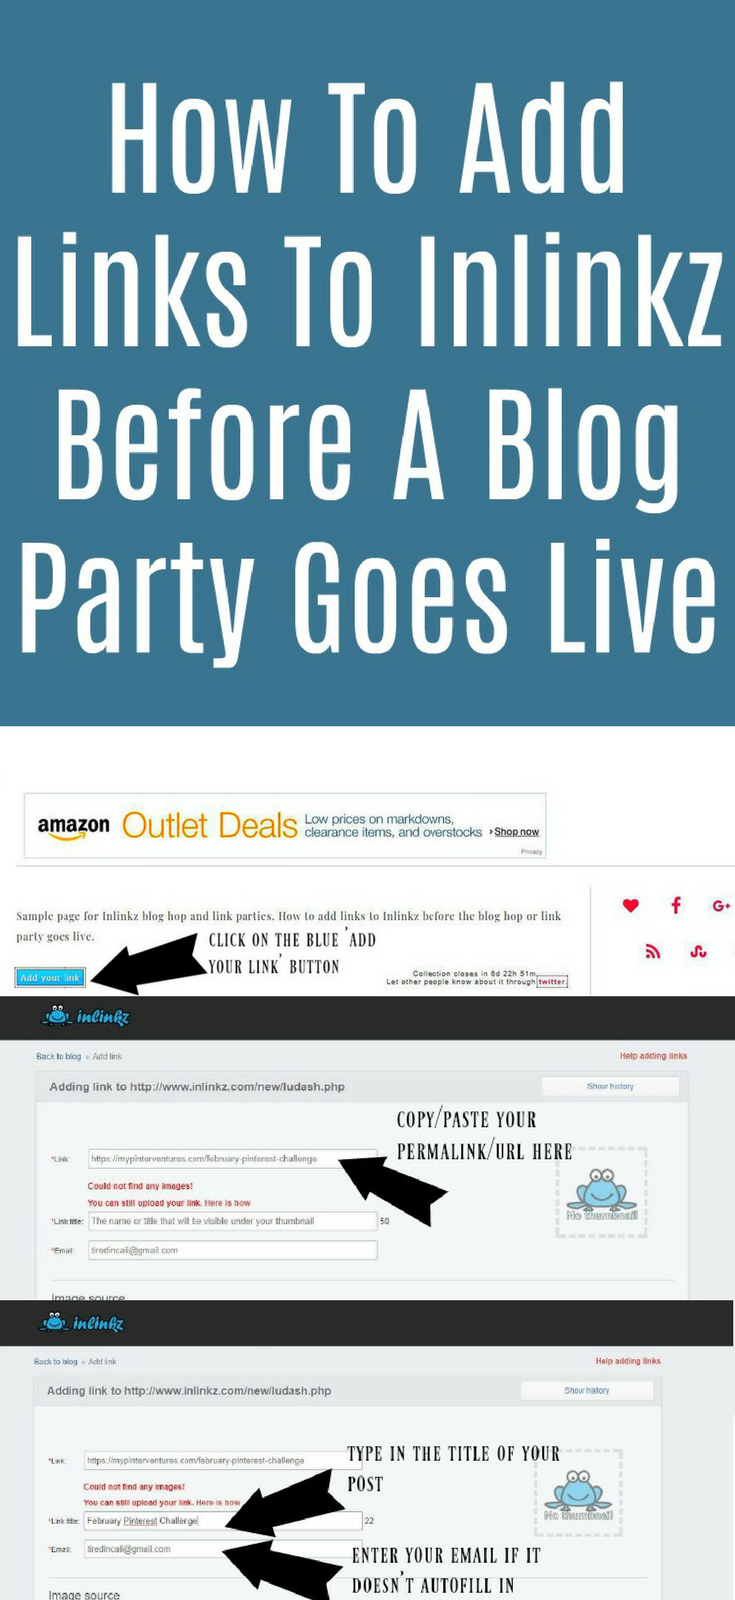 How to add links to Inlinkz before it goes live - how to add links to a blog hop or link party before it opens.